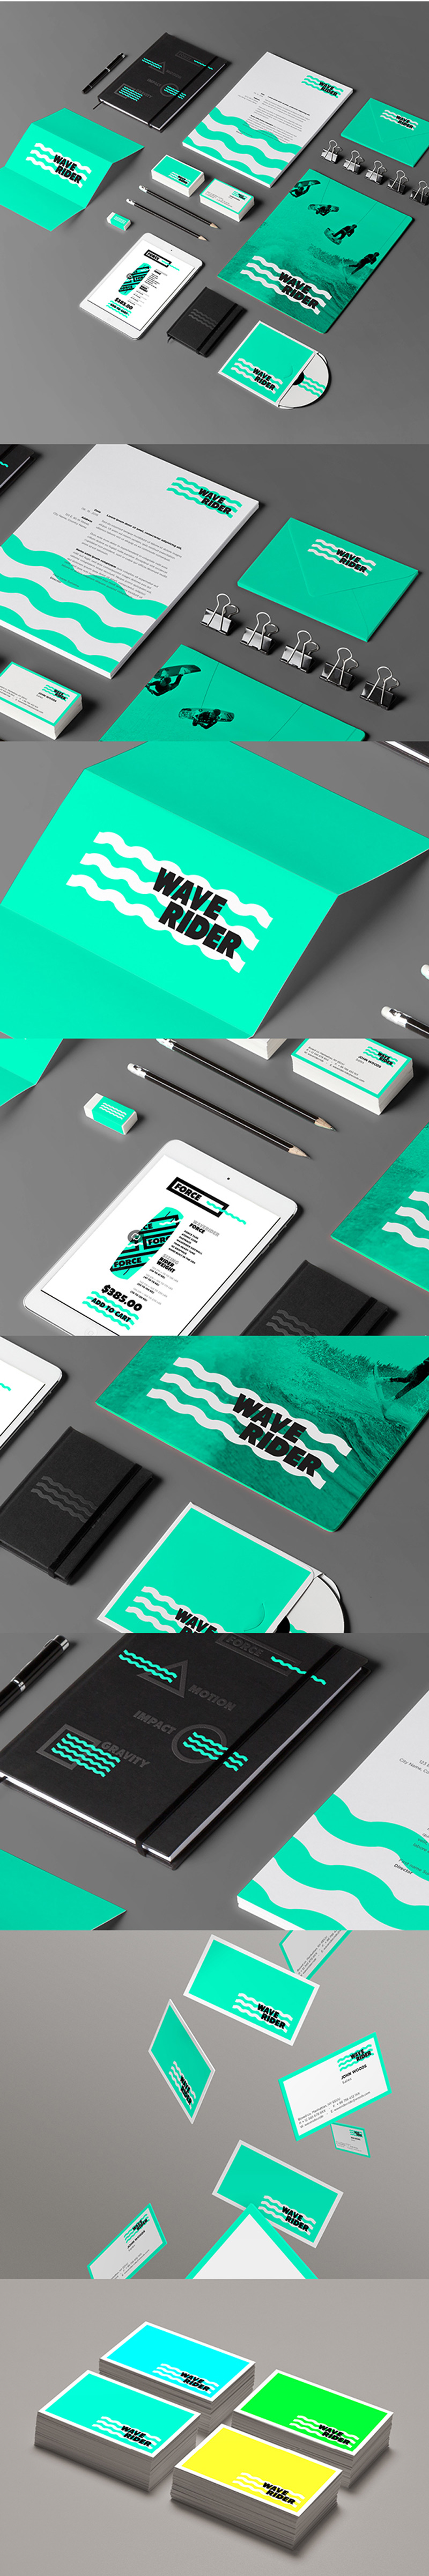 25 Examples of Brand Identity Design Done Right VipsPatel